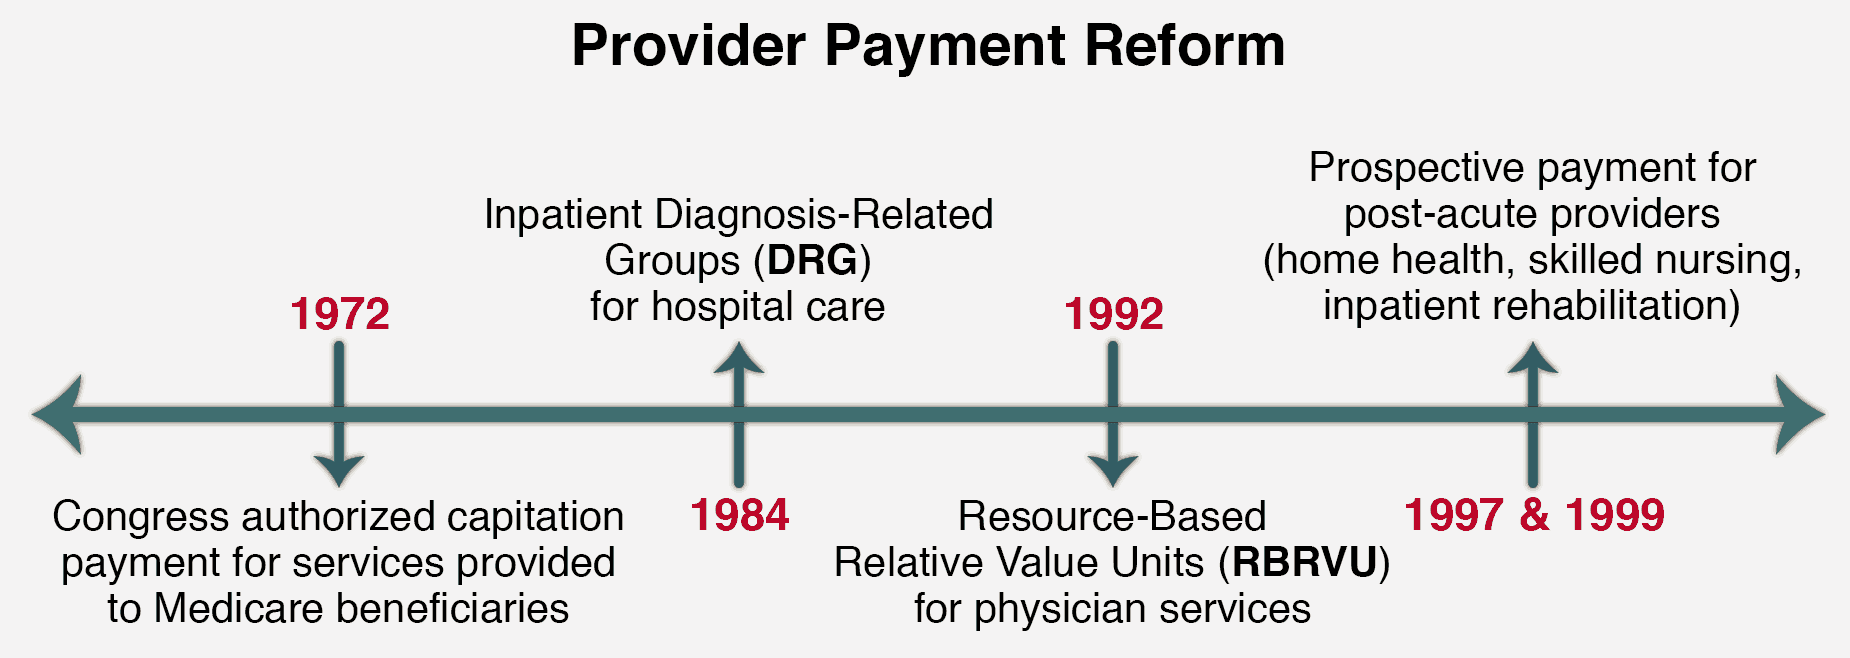 provider payment reform